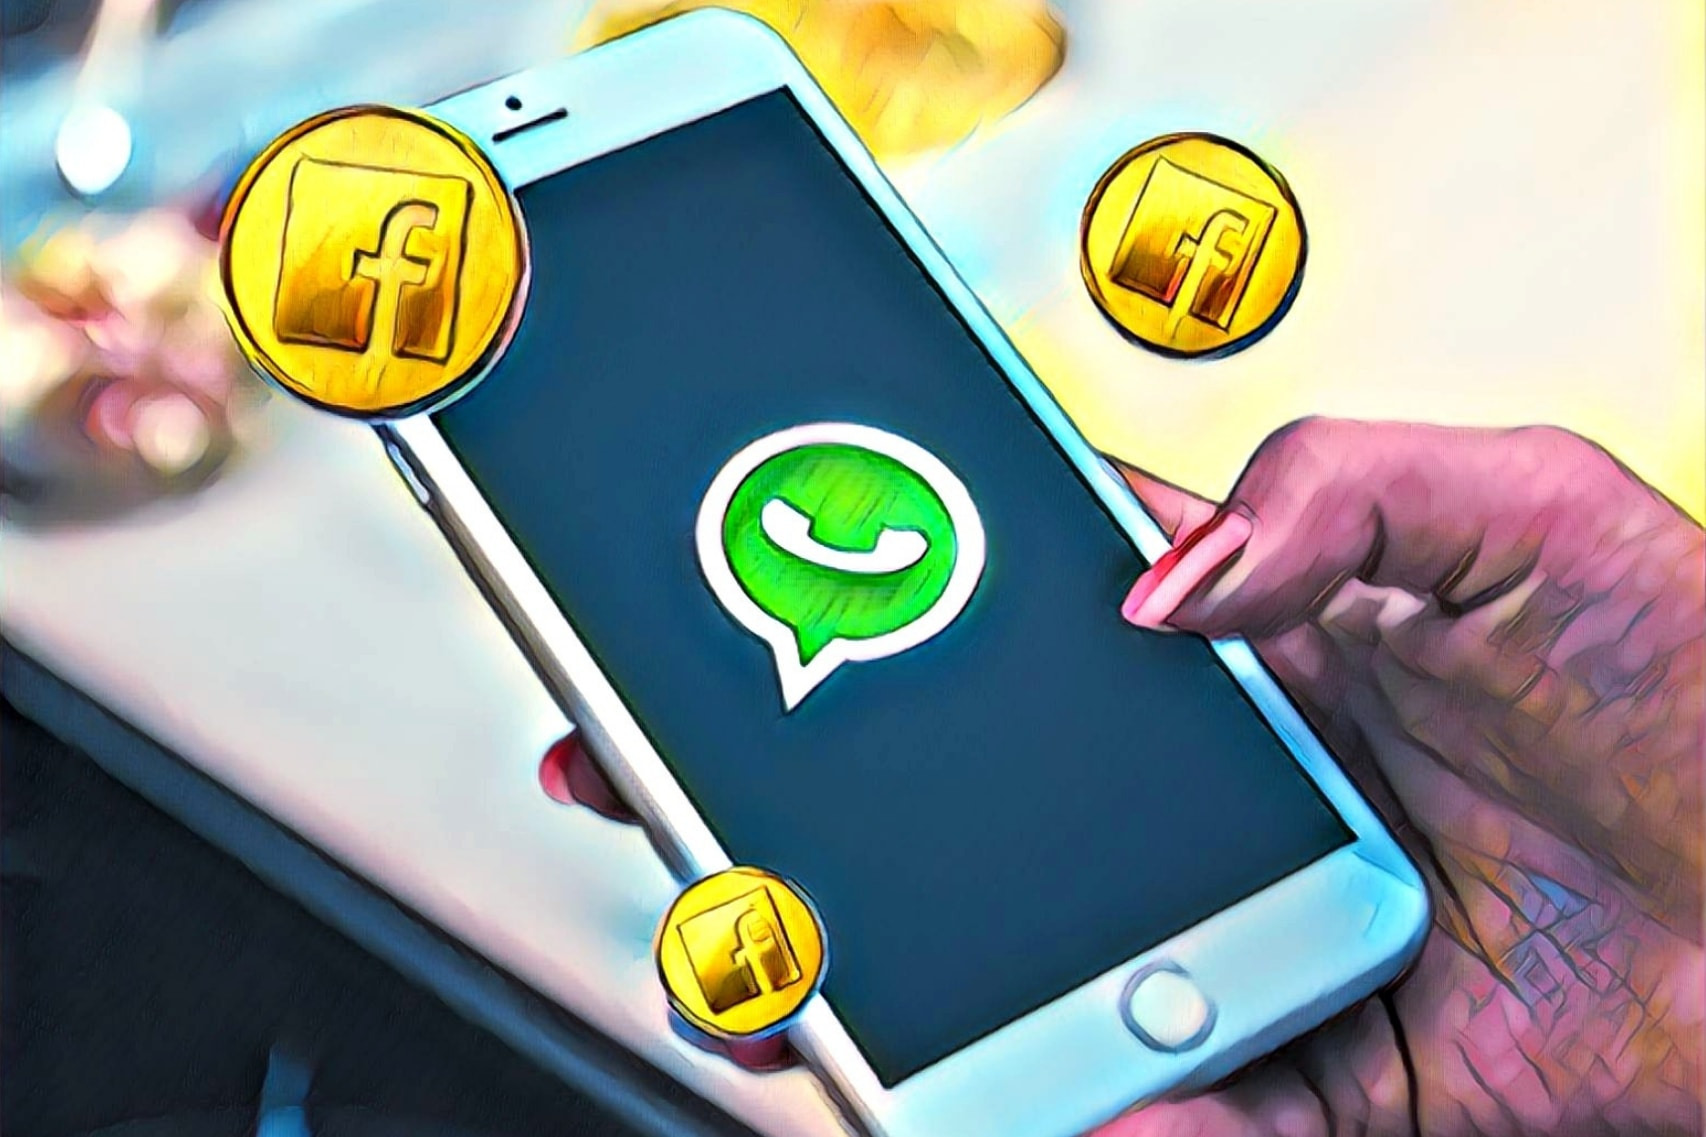 Facebook To Develop Its Cryptocurrency for WhatsApp, Sources Say